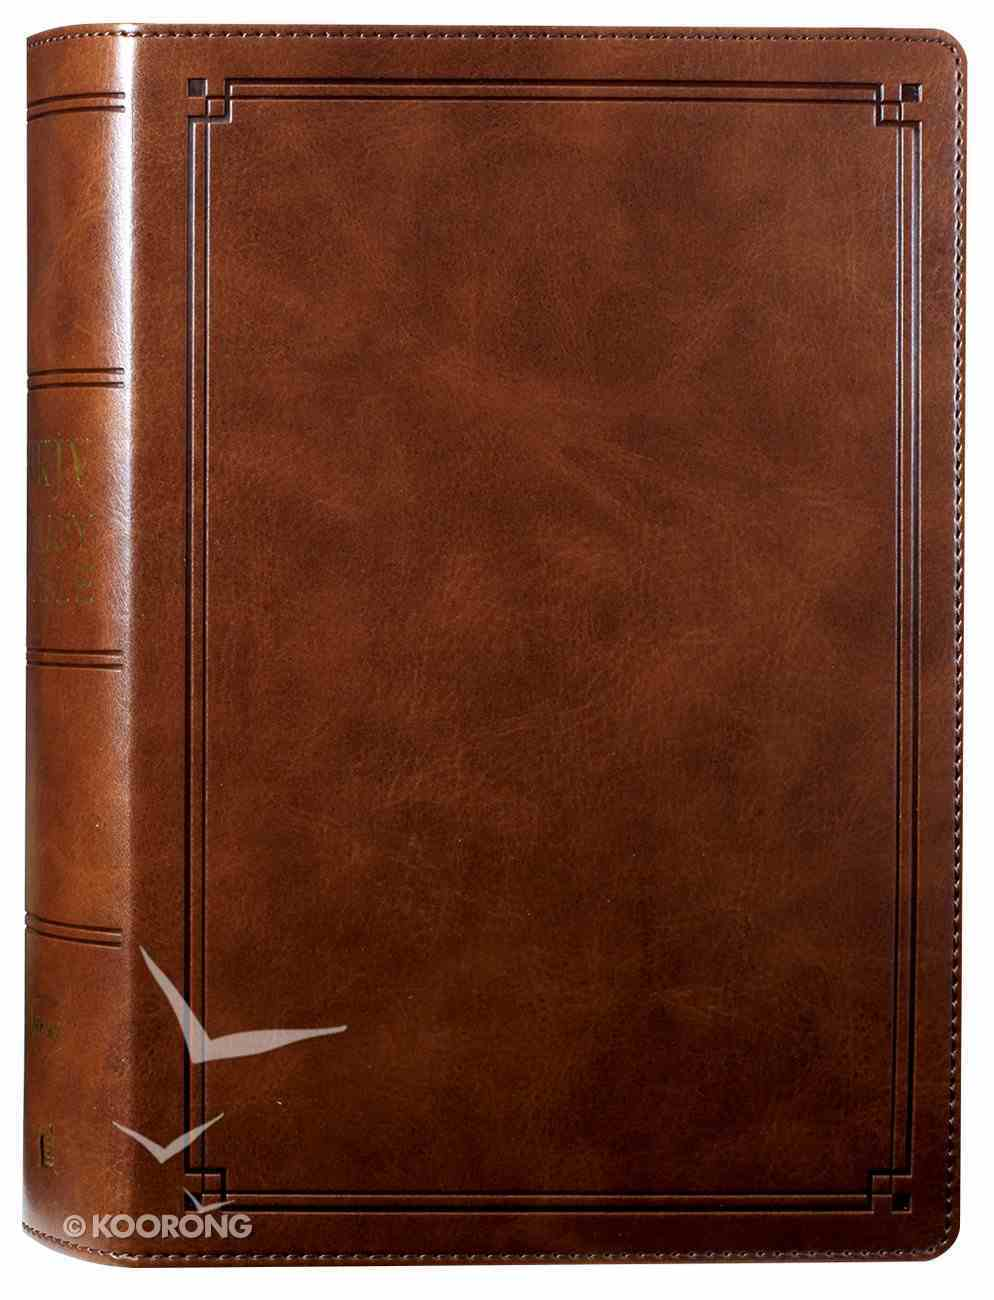 NKJV Study Bible Brown (Black Letter Edition) Imitation Leather